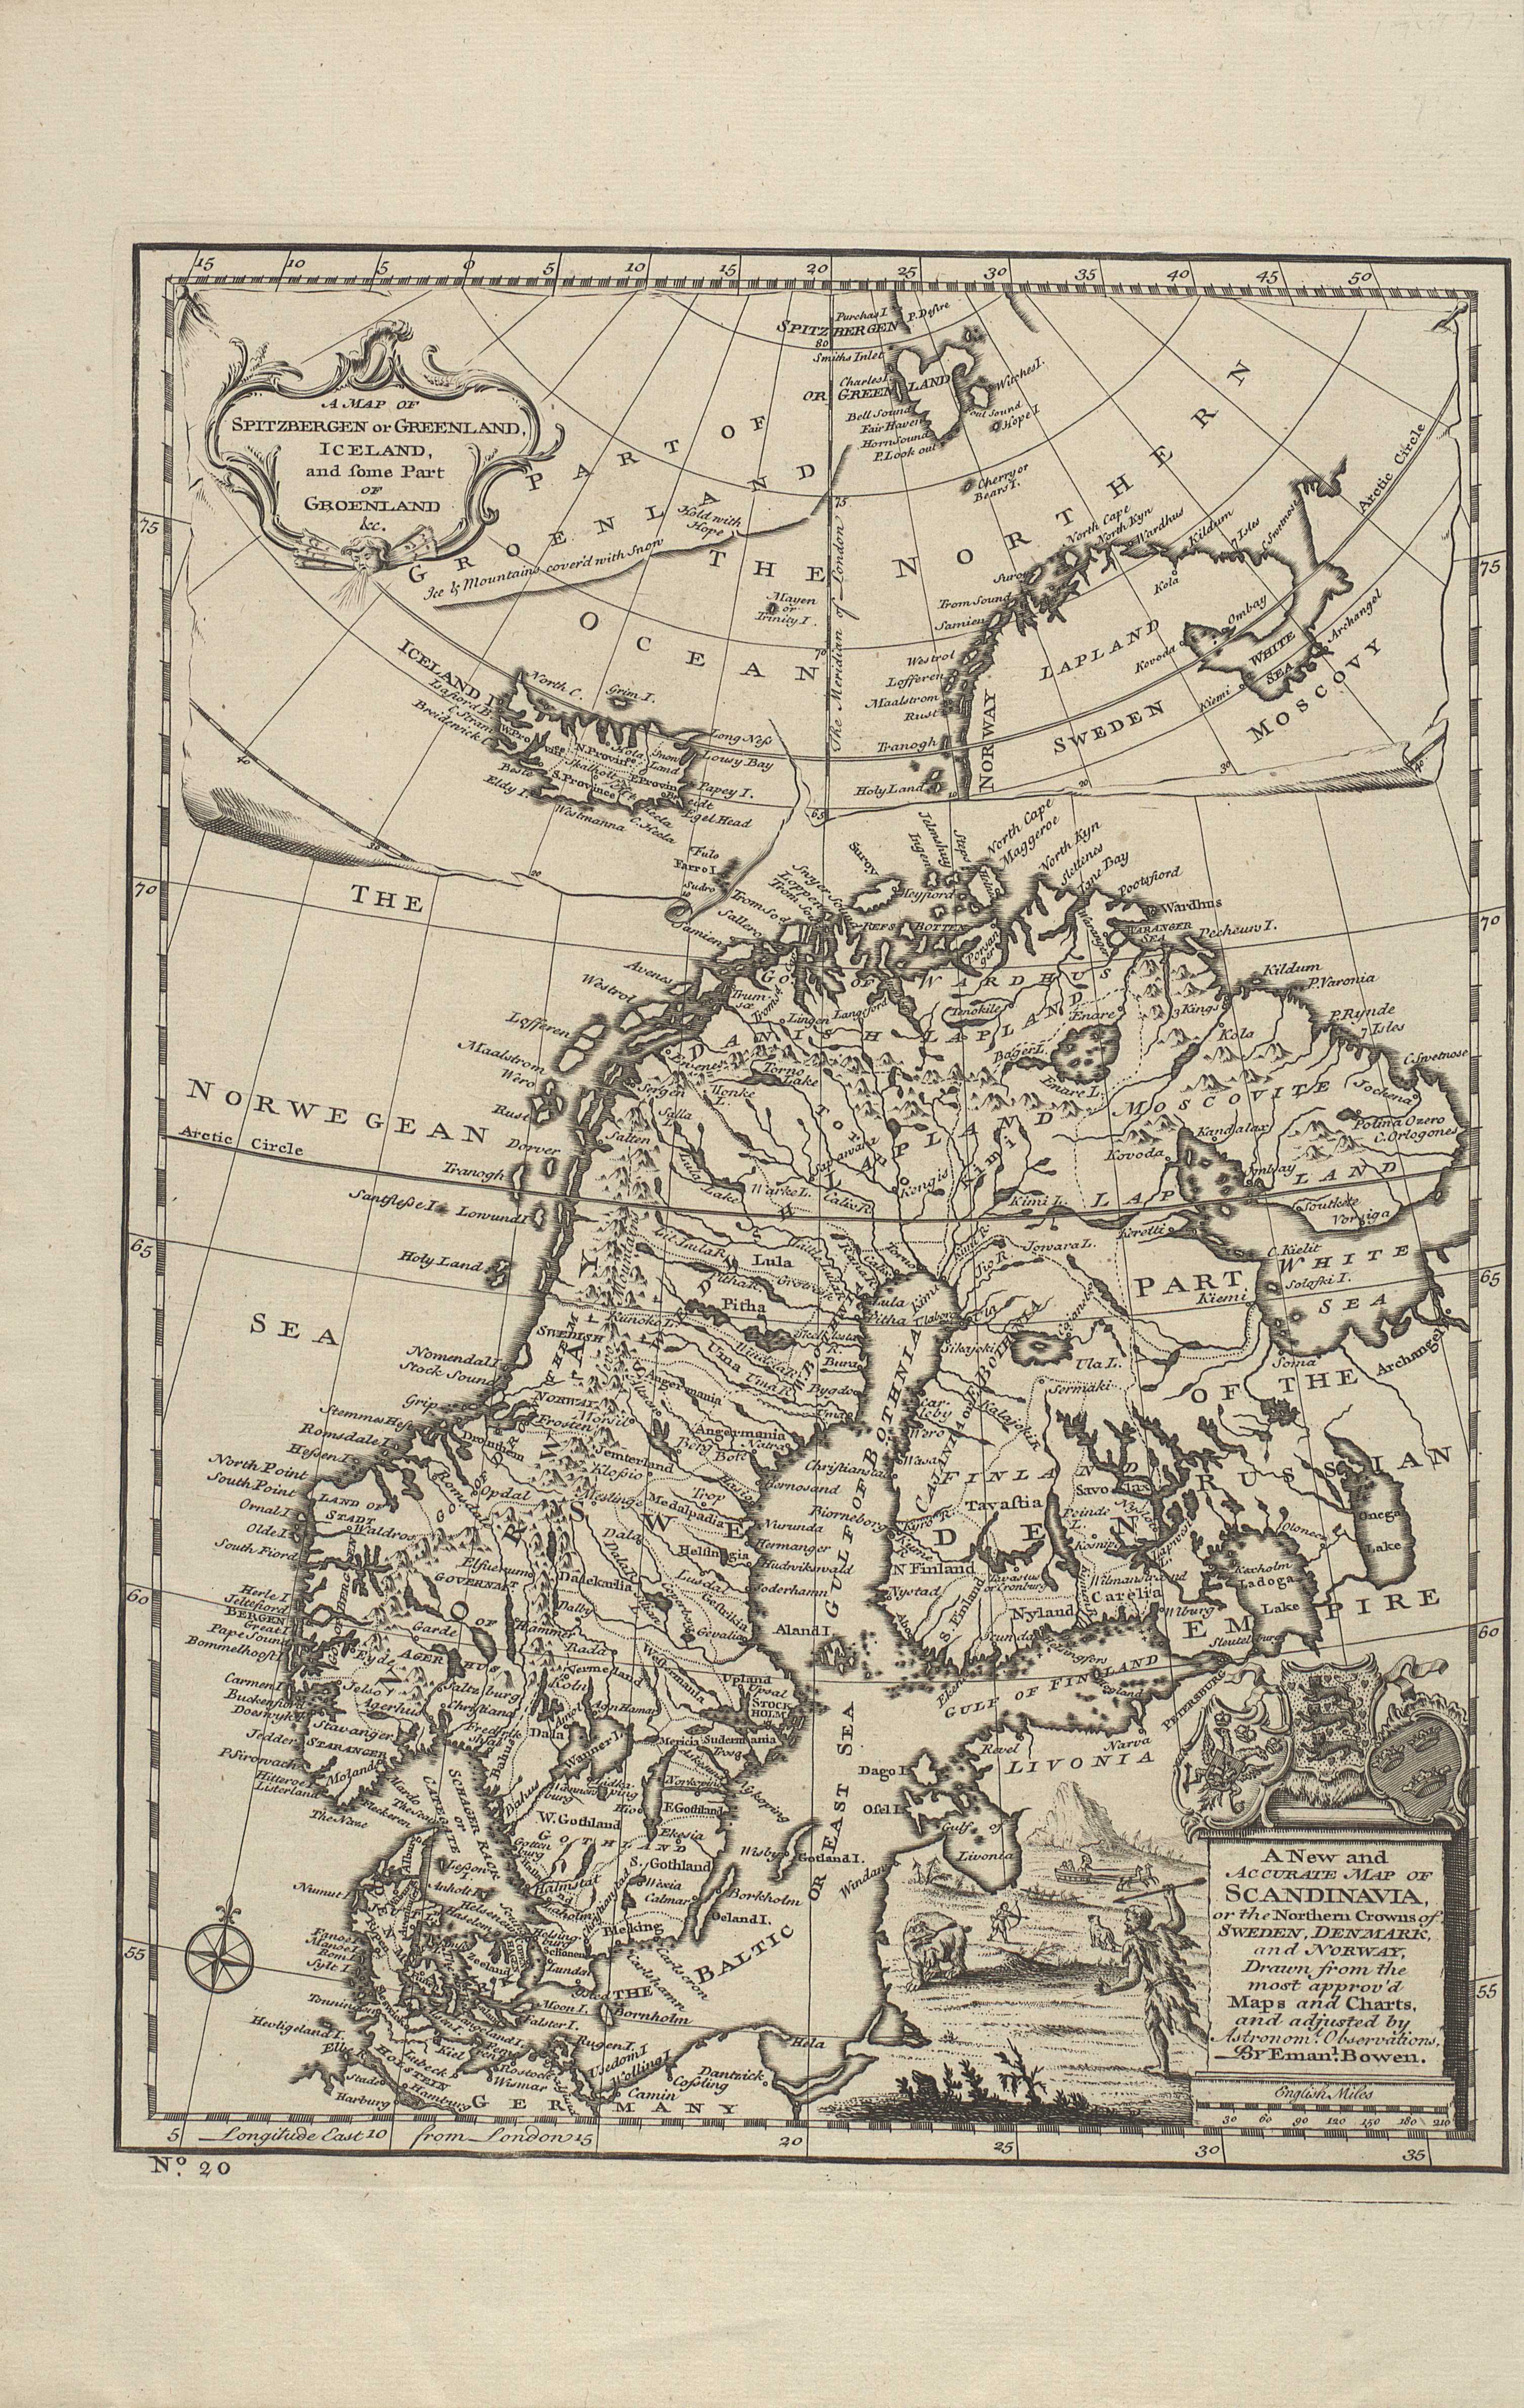 A Map of Spitzbergen or Greenland, Iceland, and some Part of Groenland &c